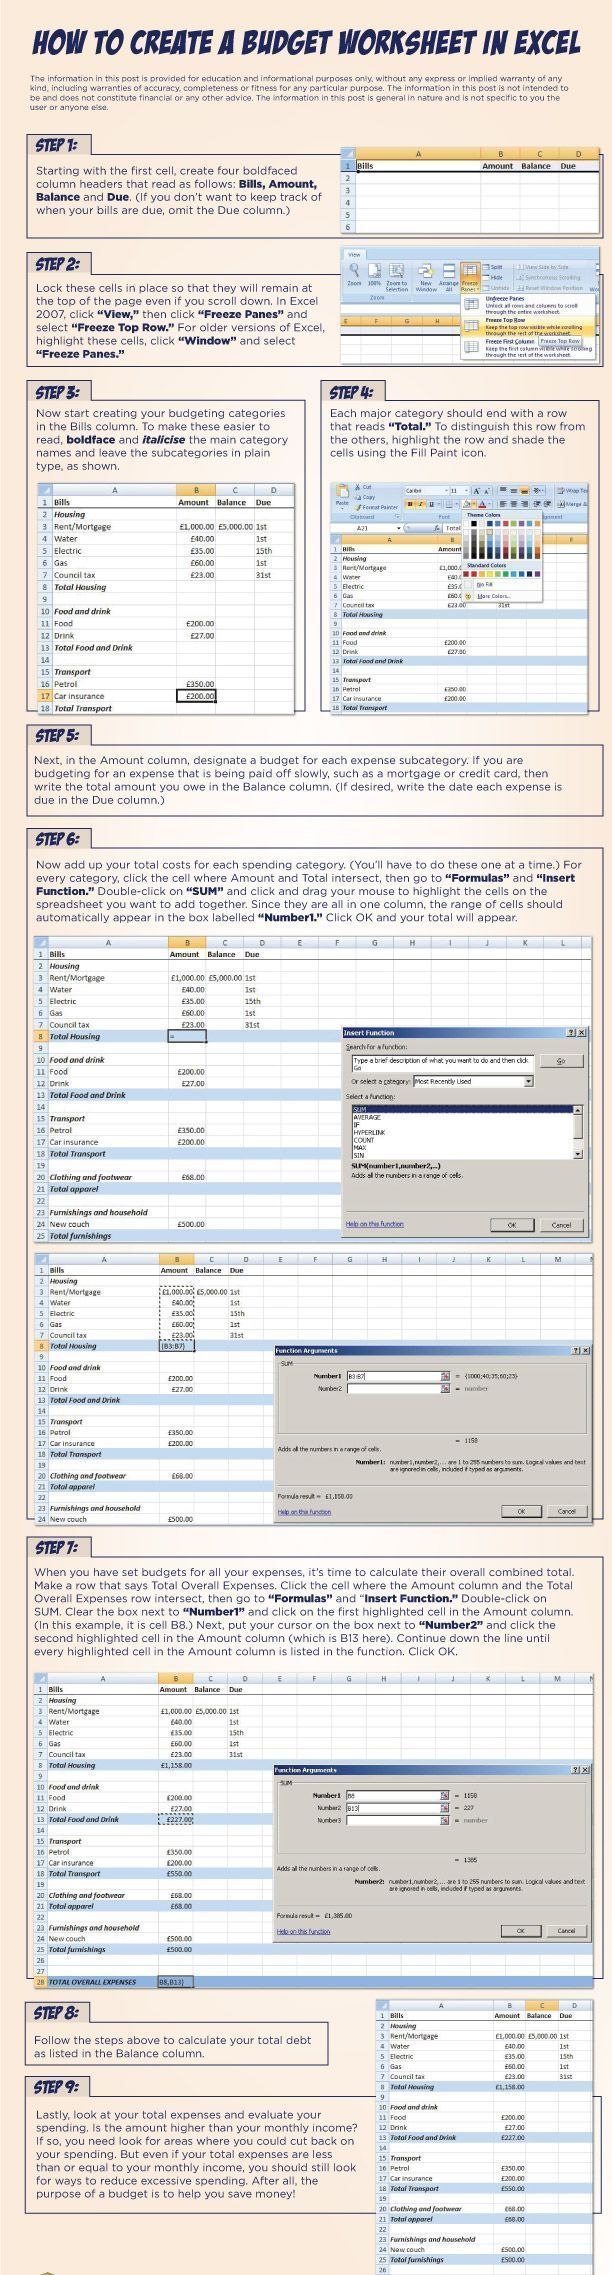 worksheet Household Budget Worksheets 25 unique household budget worksheet ideas on pinterest family learn how to create a in excel step by step